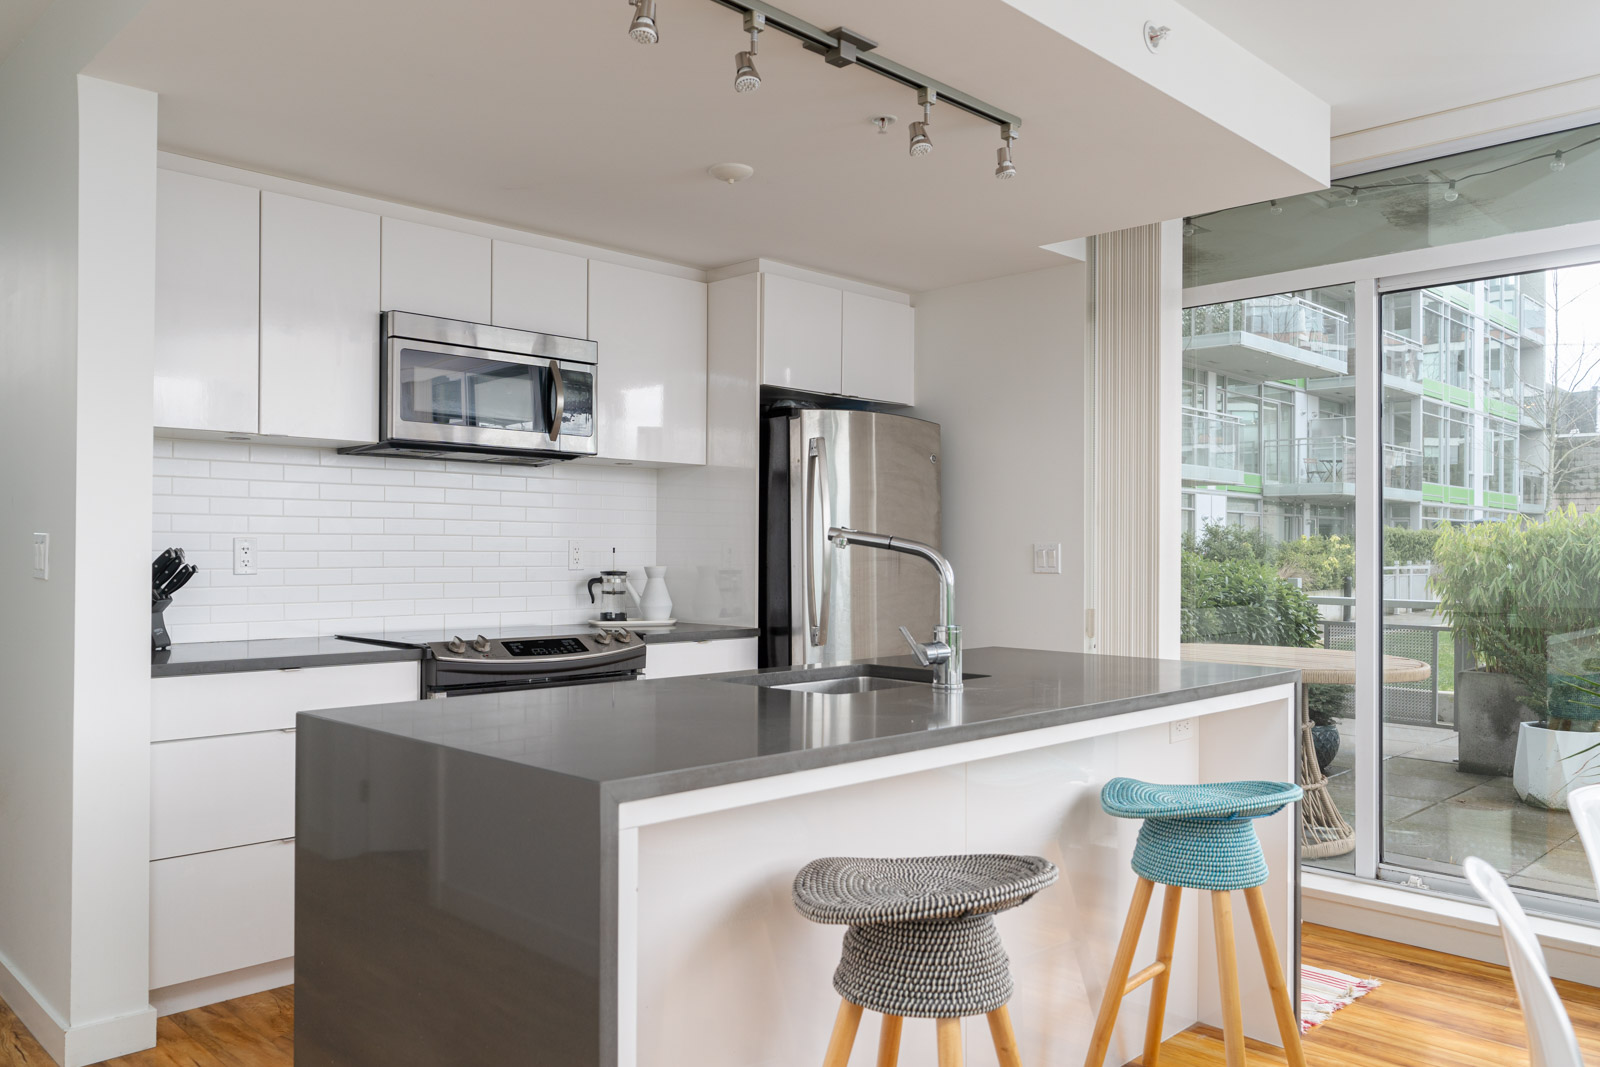 kitchen in rental house in the Mount pleasant neighbourhood of Vancouver